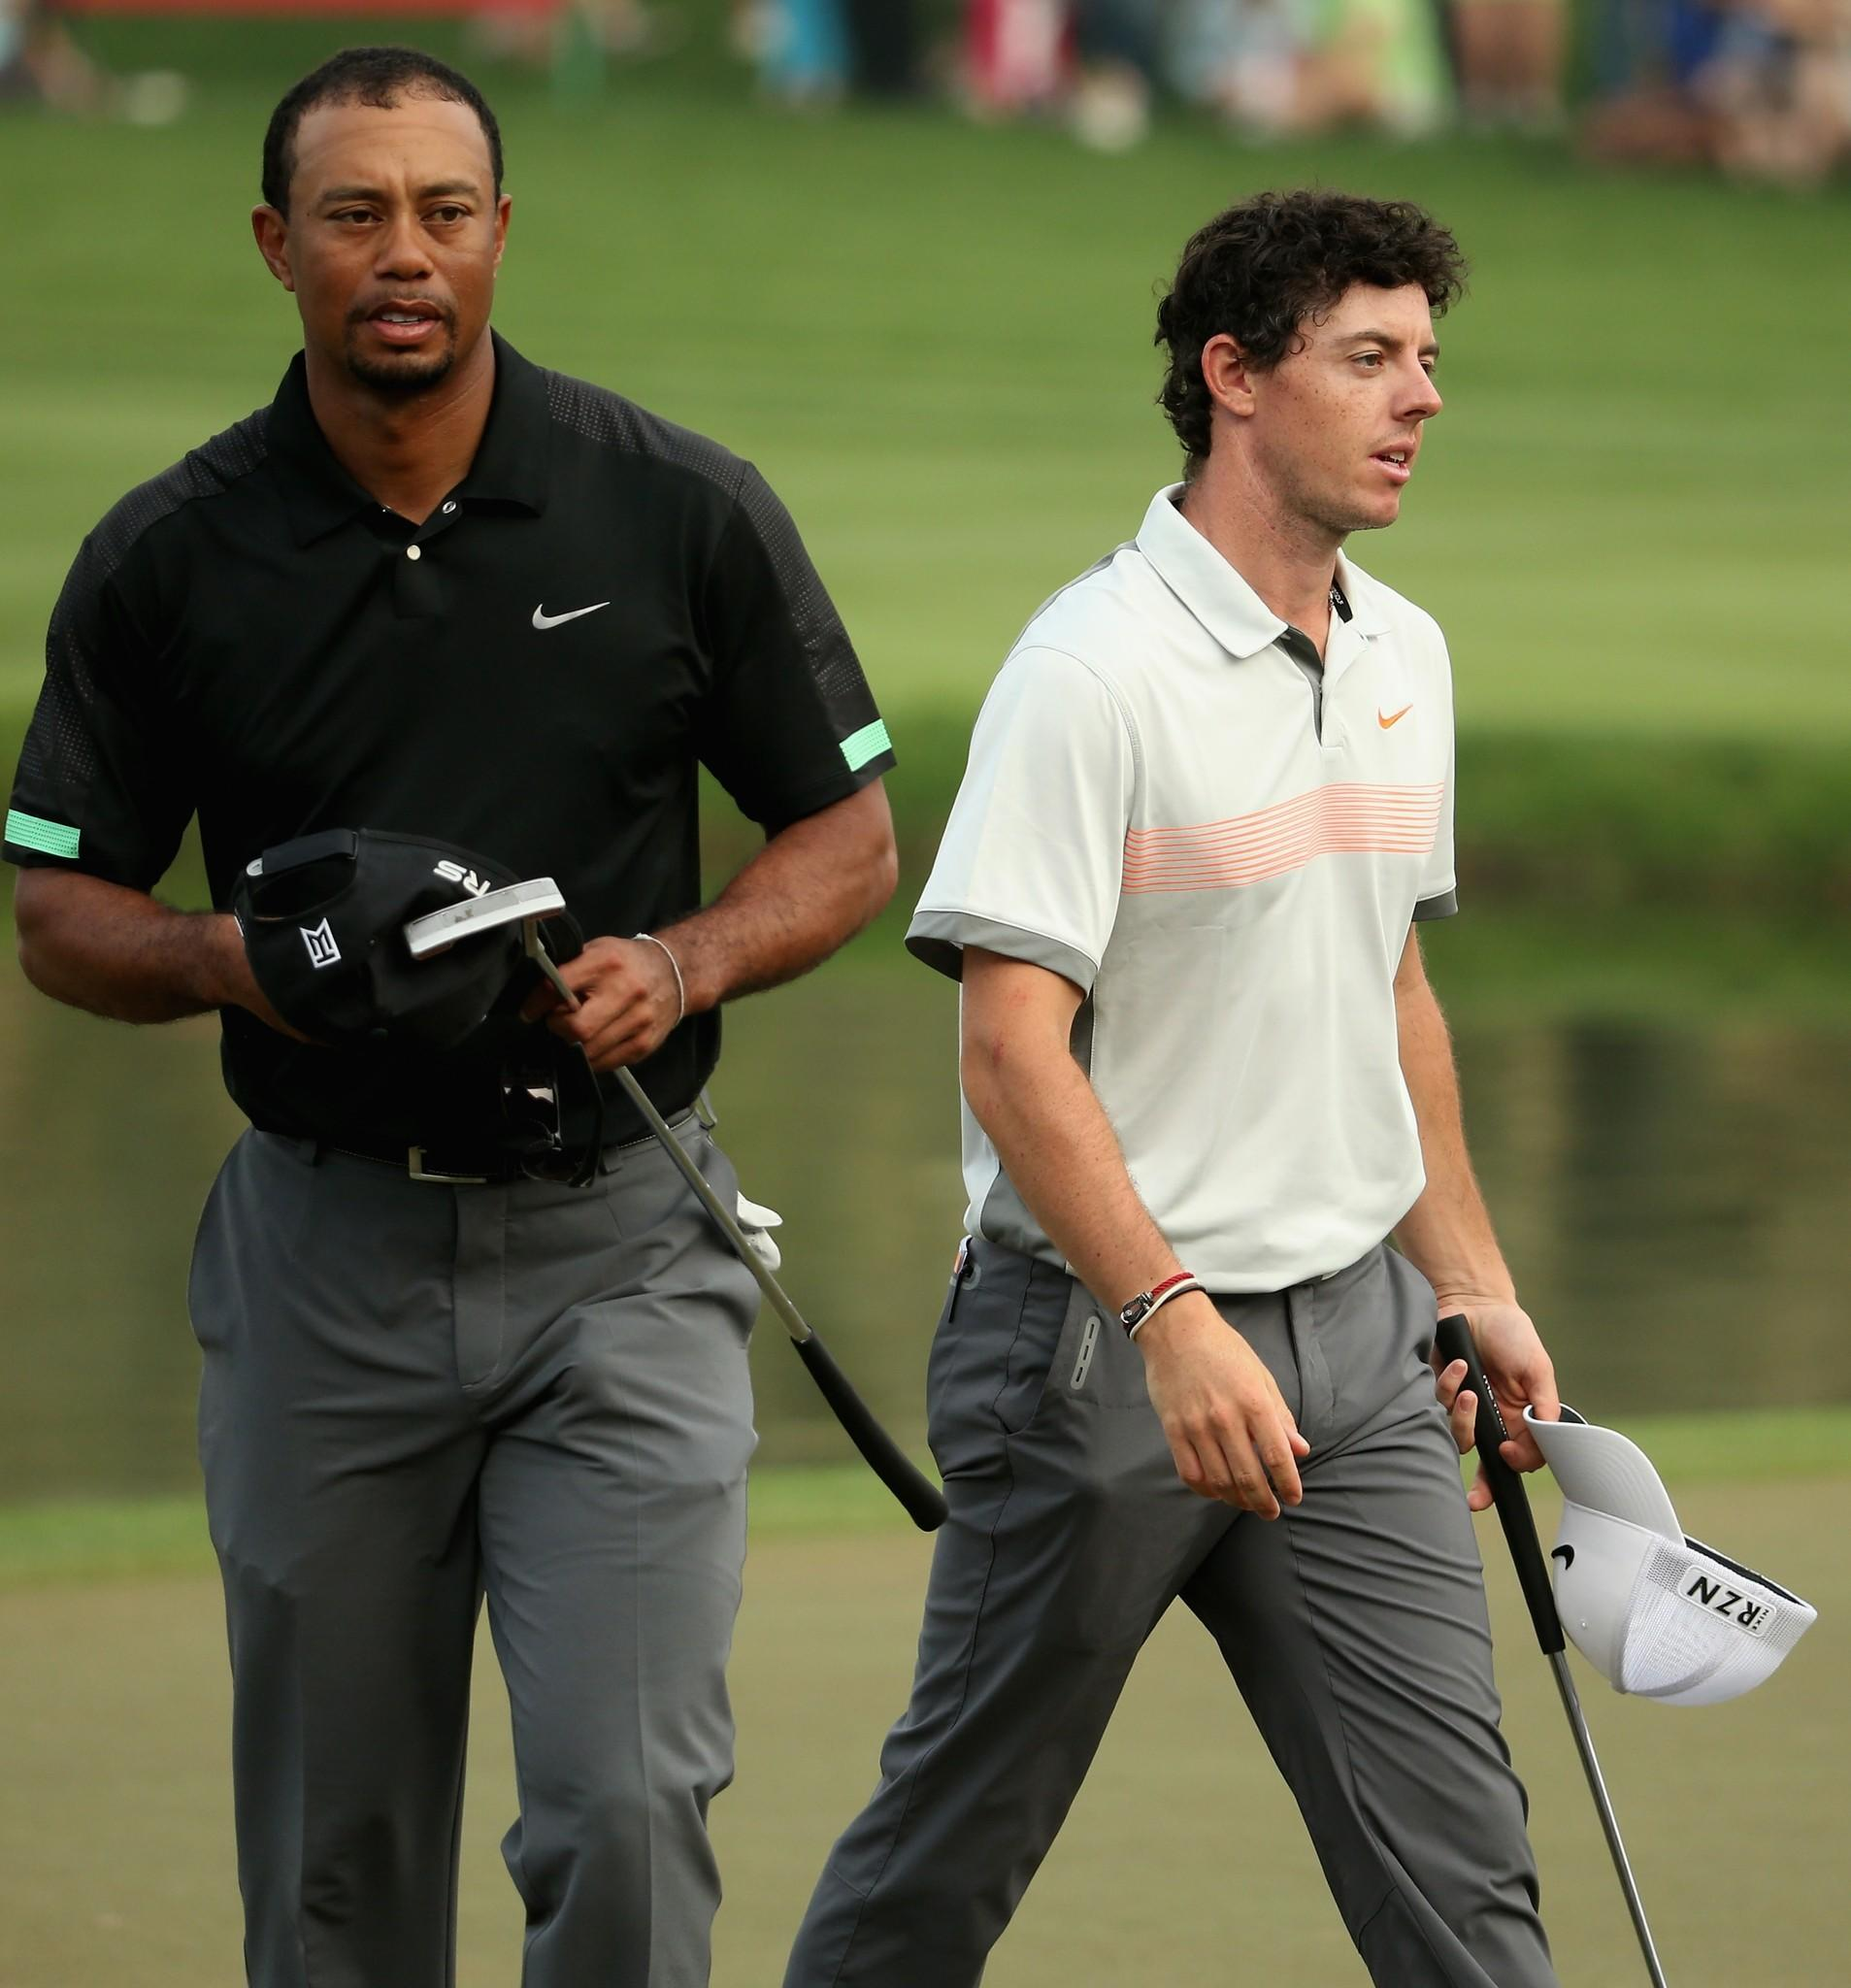 Rory McIlroy and Tiger Woods walk off the 18th green during the second round of the 2014 Omega Dubai Desert Classic Friday.